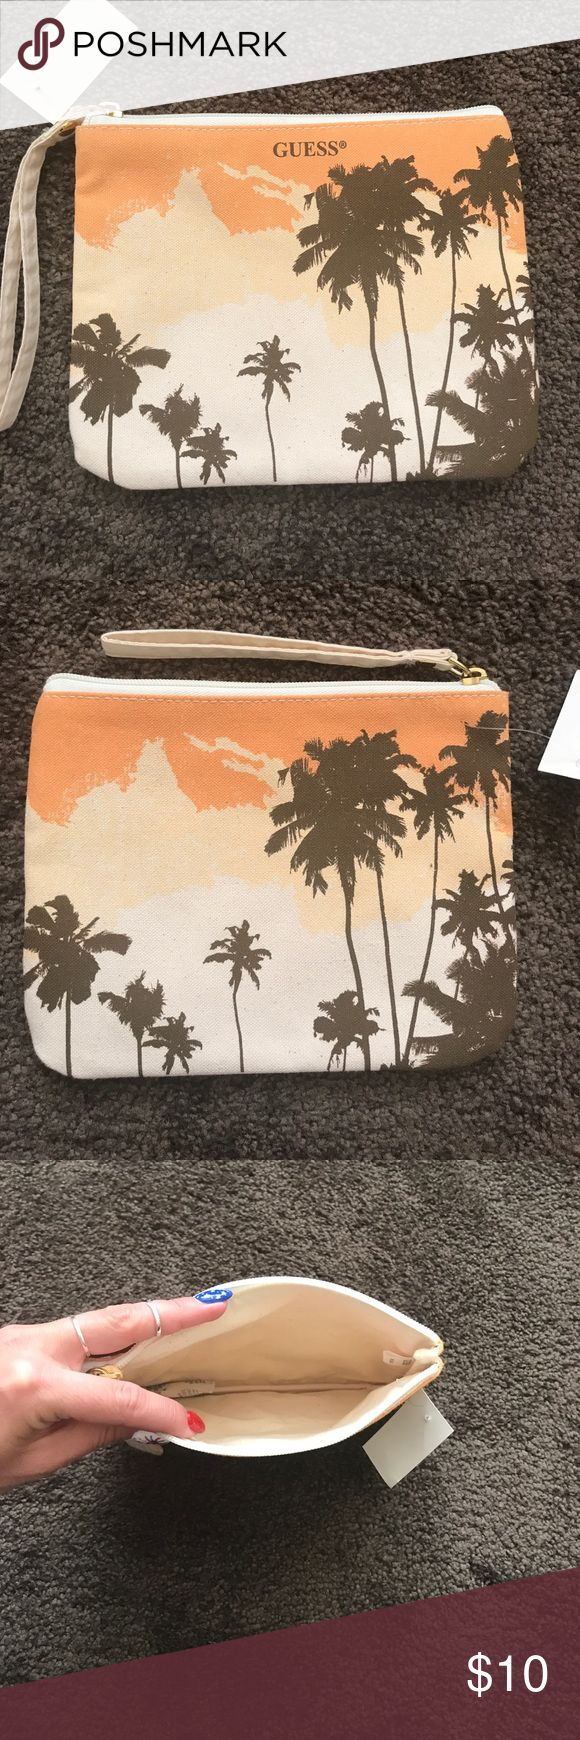 Guess small cosmetic bag Brand new so cute!! Palm tree guess cosmetic bag/clutch with zipper and handle Guess Bags Cosmetic Bags & Cases